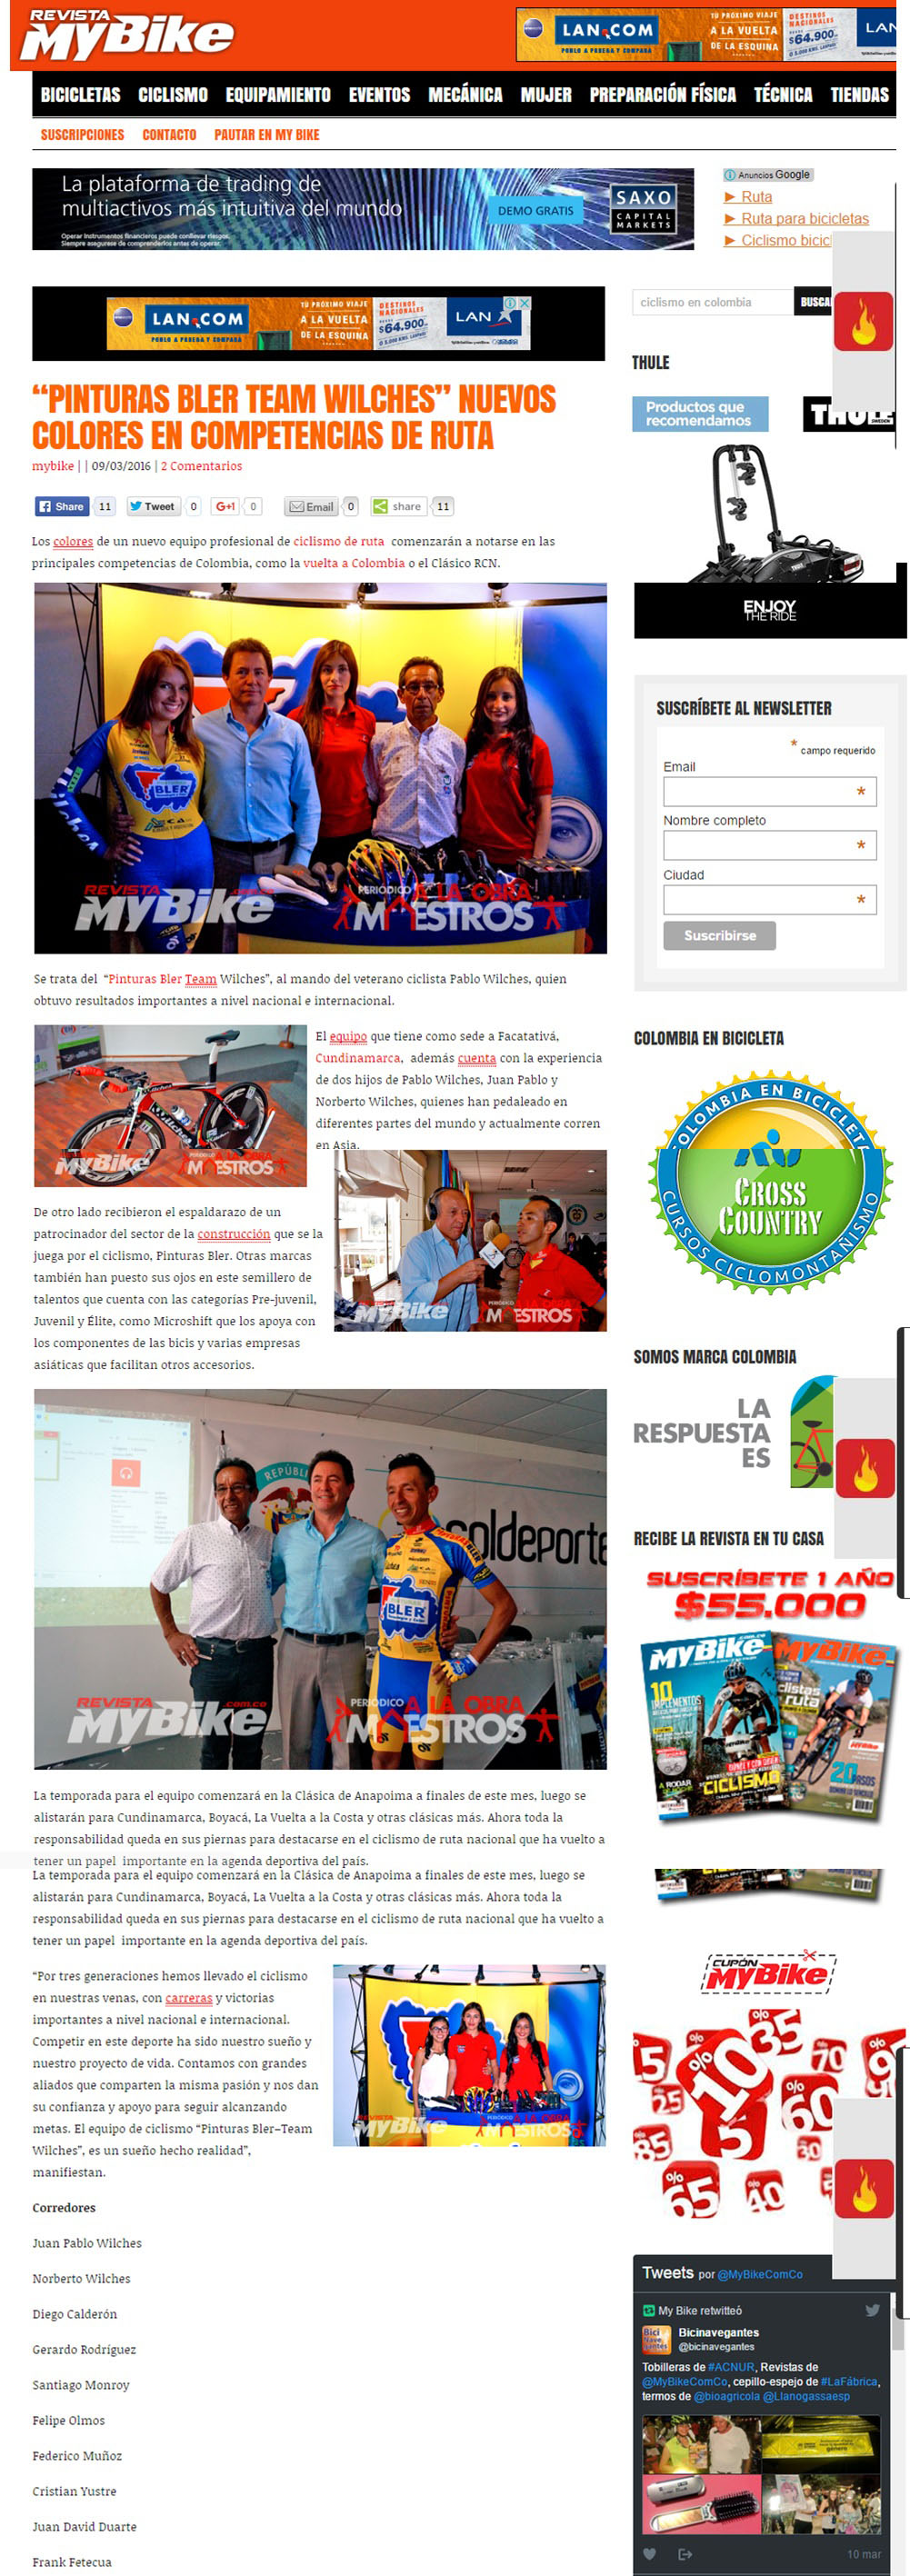 My Bike 9 de Marzo de 2016 [web]